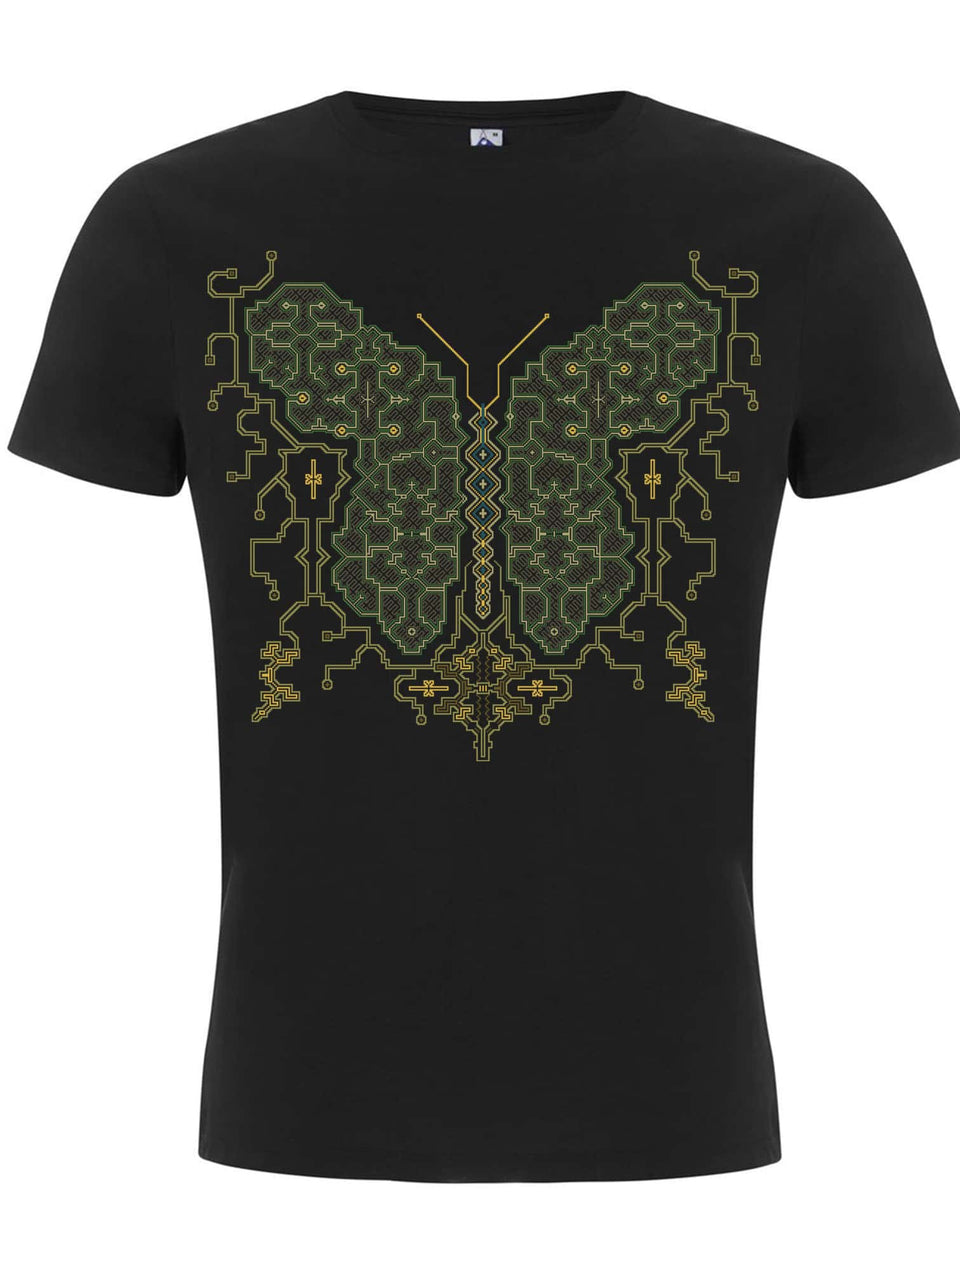 Shipibo Butterfly Made To Order Men T-Shirt - Black